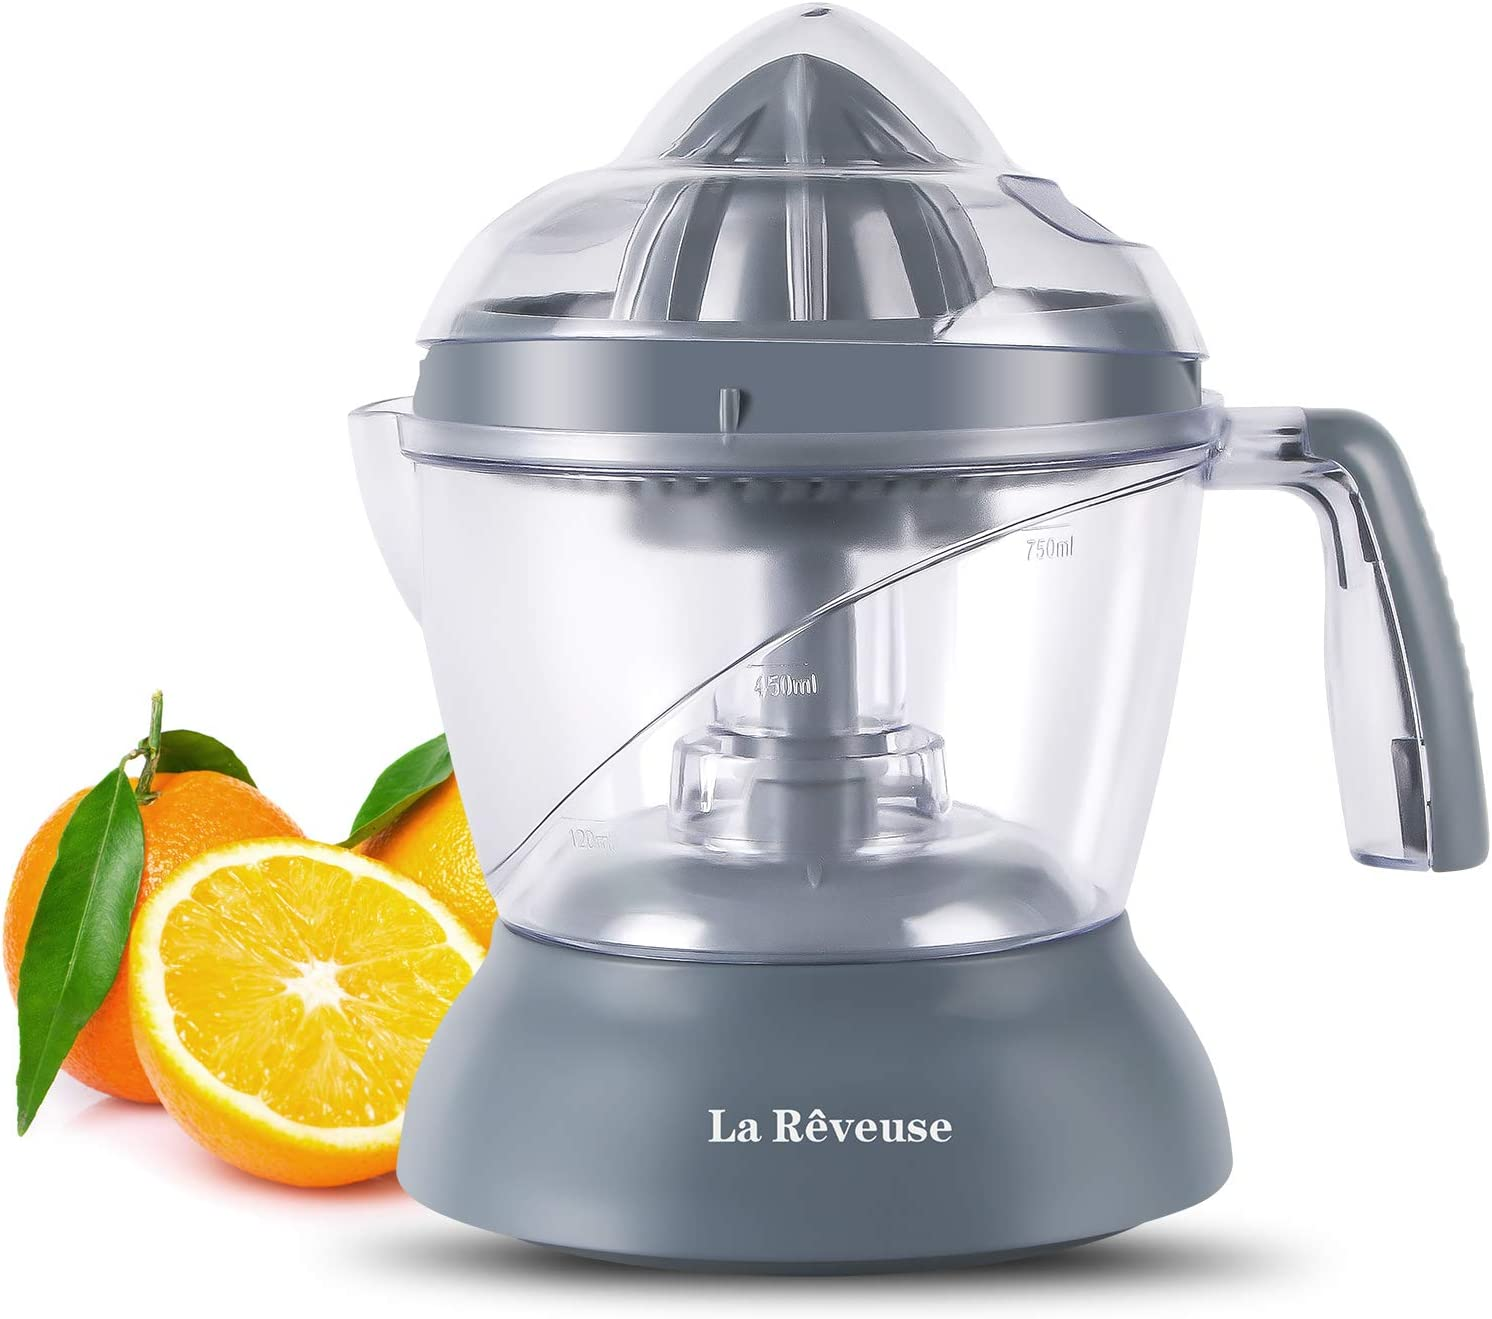 La Reveuse 25 oz/750 ml Electric Citrus Juicer for Grapefruit Orange Lemon Lime Juice, Grey